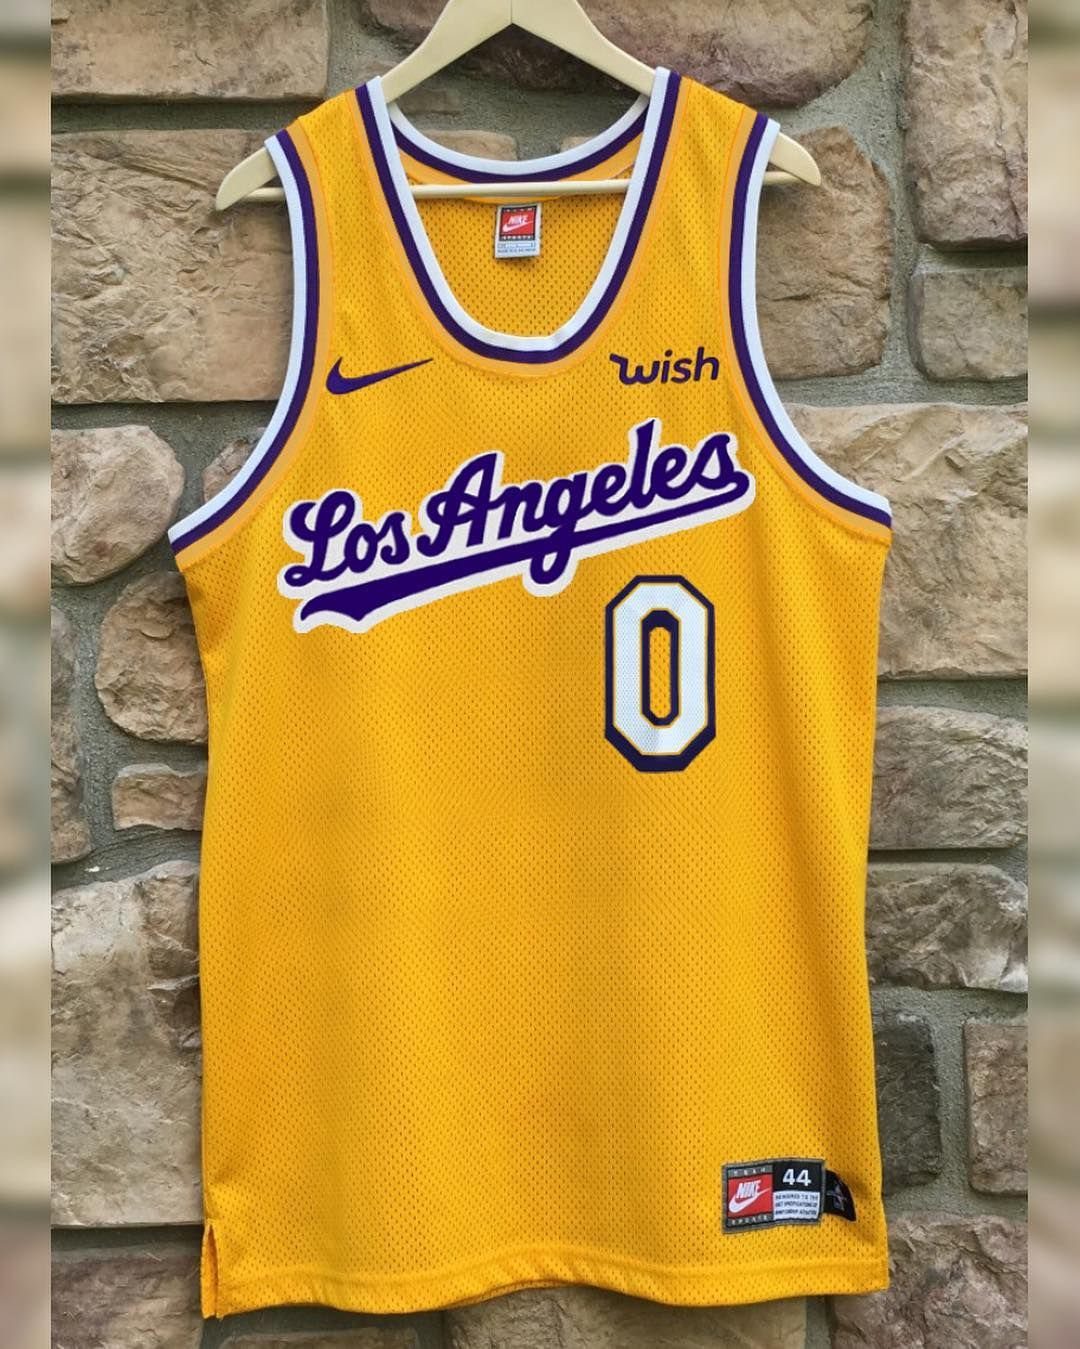 Another Look At My L A Classics Lakers Jerseys Simple And Sleek Designs I D Love For The Lake Show To Turn Into Official Alter Jersey Lakers Sleek Design